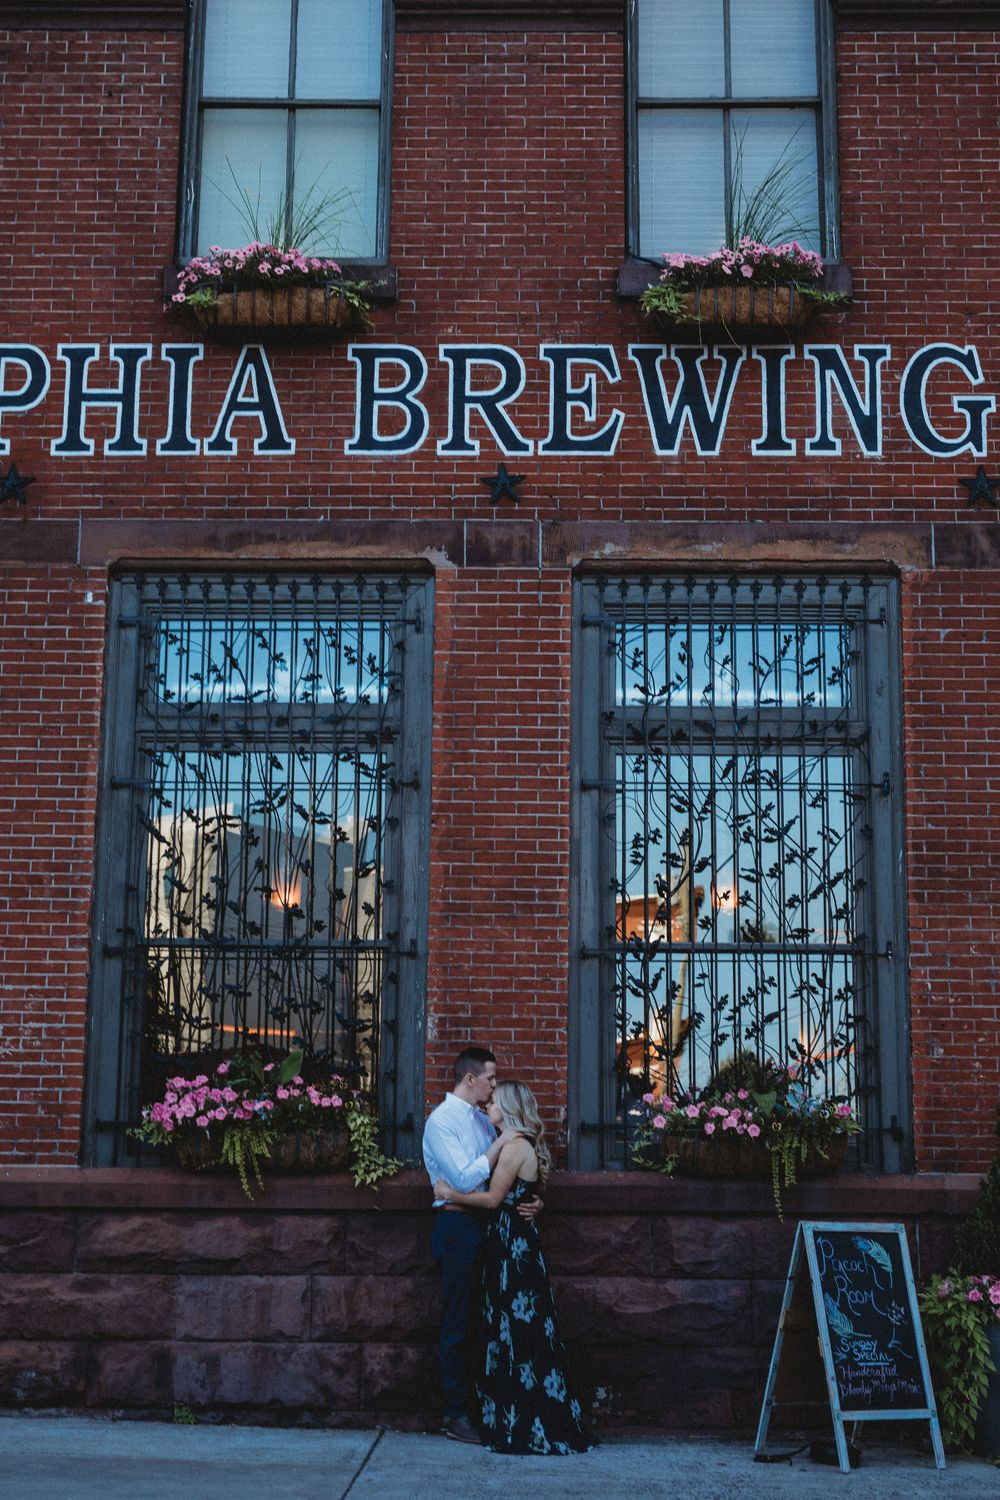 A couple in an engagement shoot in Philadelphia by a brewing company